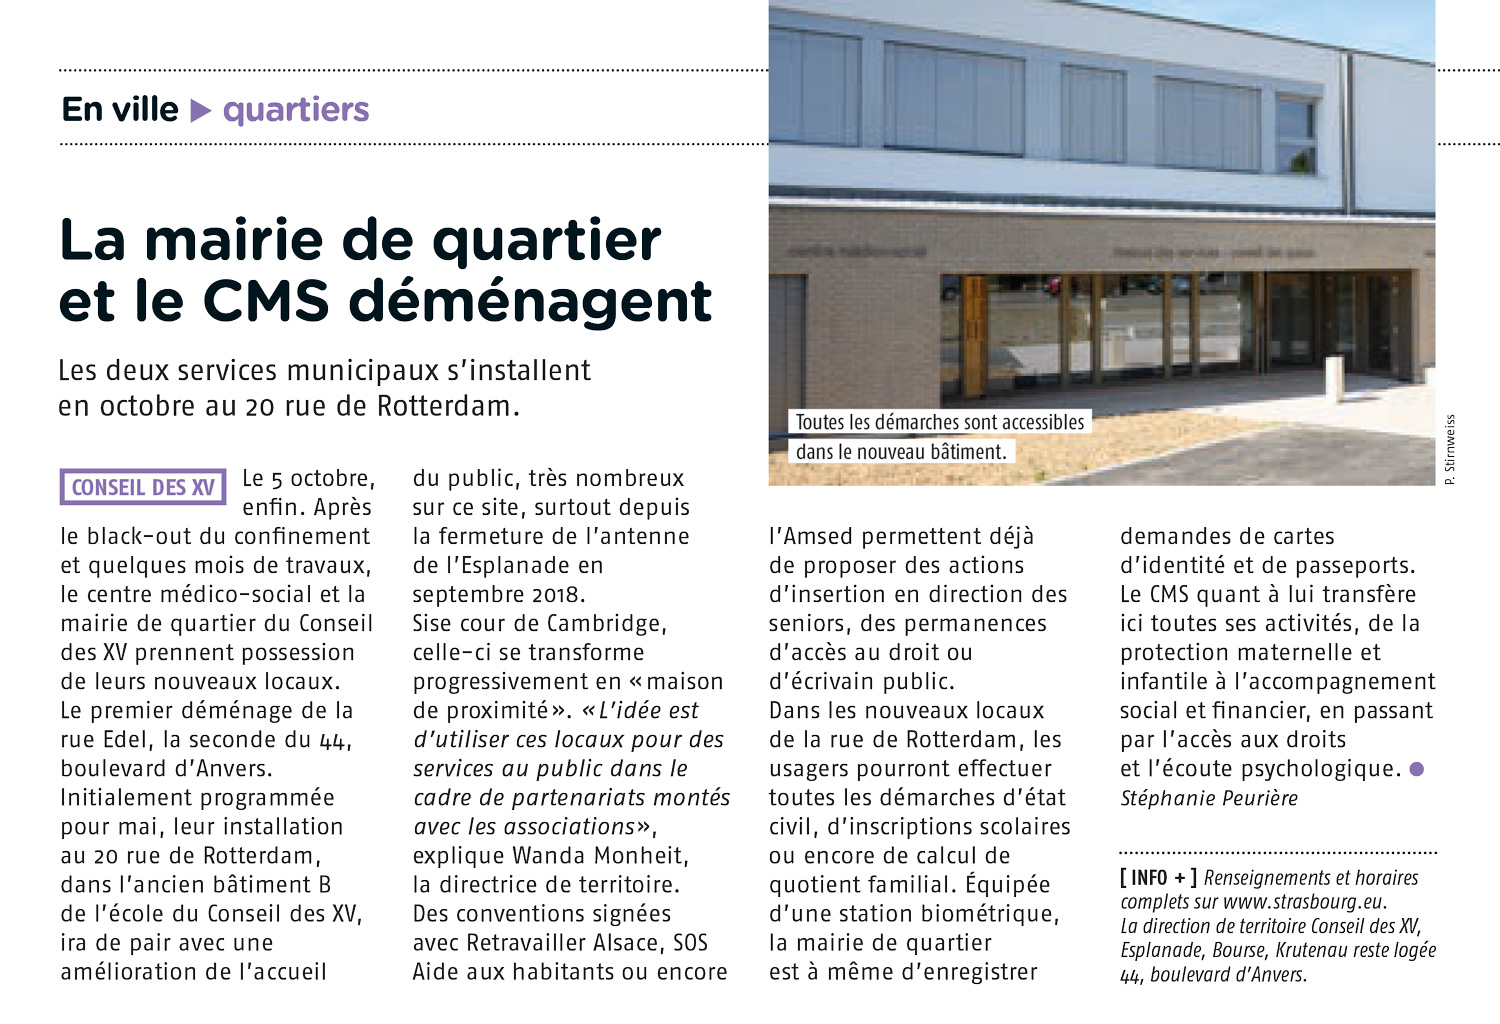 Photo - MdS-publication-strasbourg-mag-article